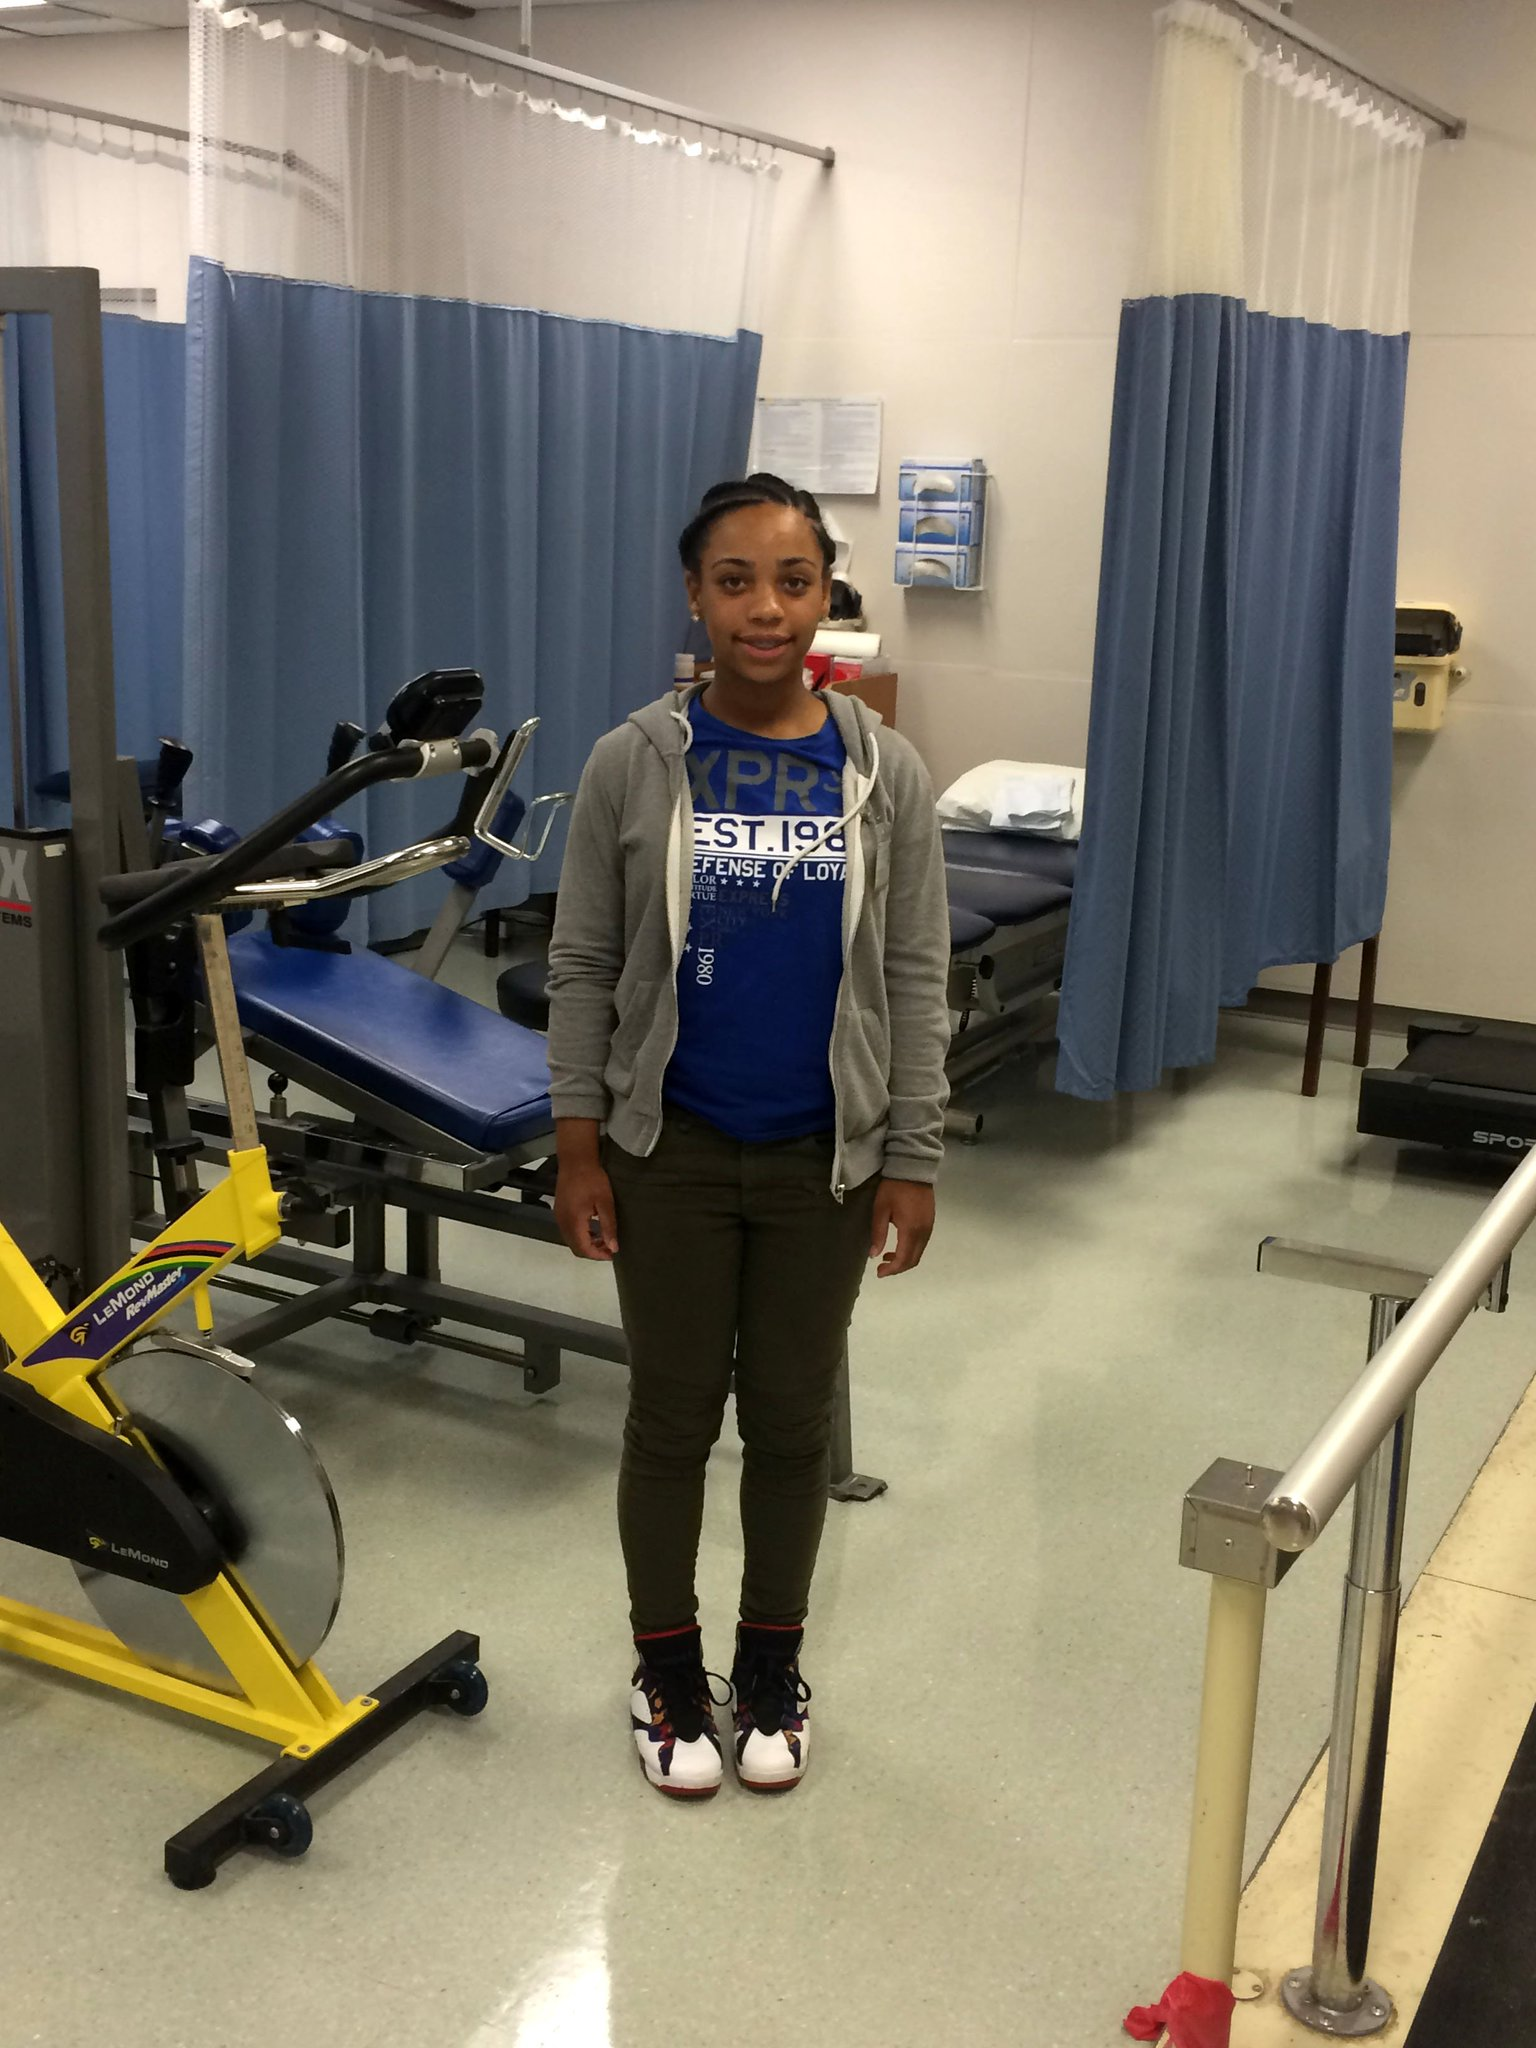 dc public schools on knakiya of easternhs is shadowing dc public schools on knakiya of easternhs is shadowing physical therapists through the pediatrics and icu wings at medstarhealth